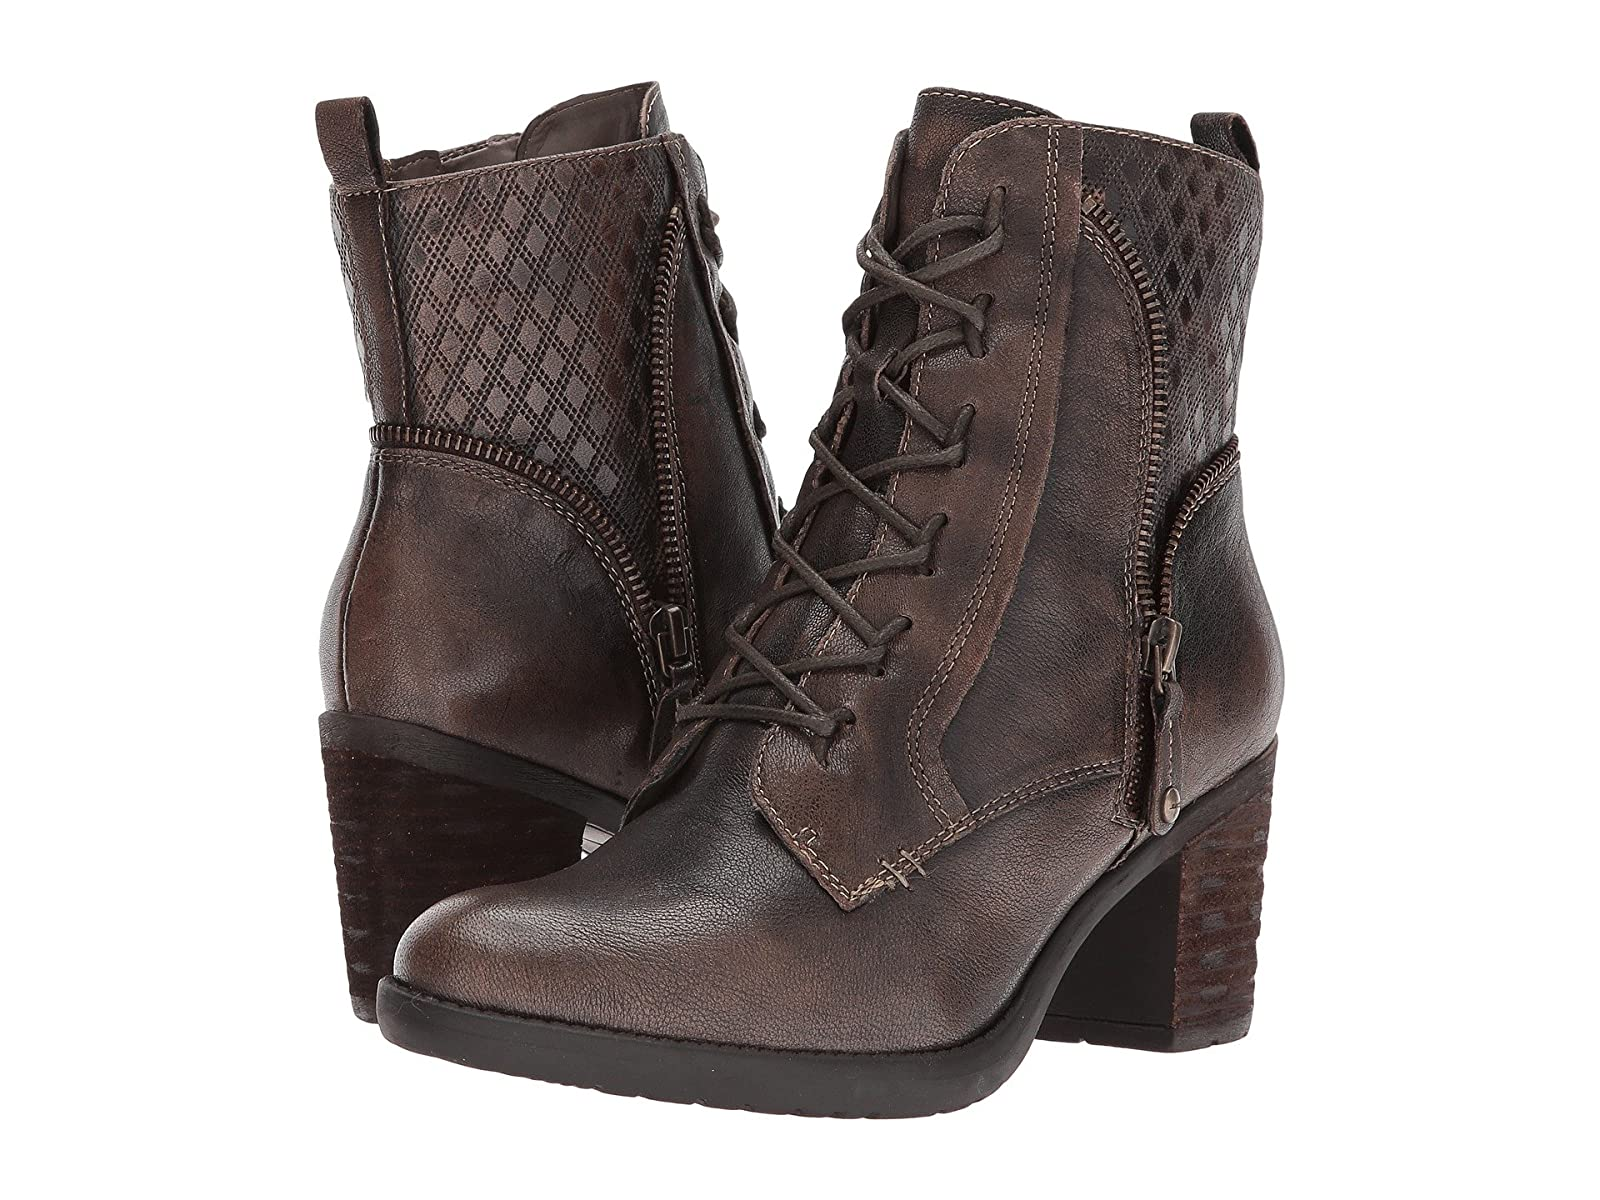 Earth MissoulaCheap and distinctive eye-catching shoes